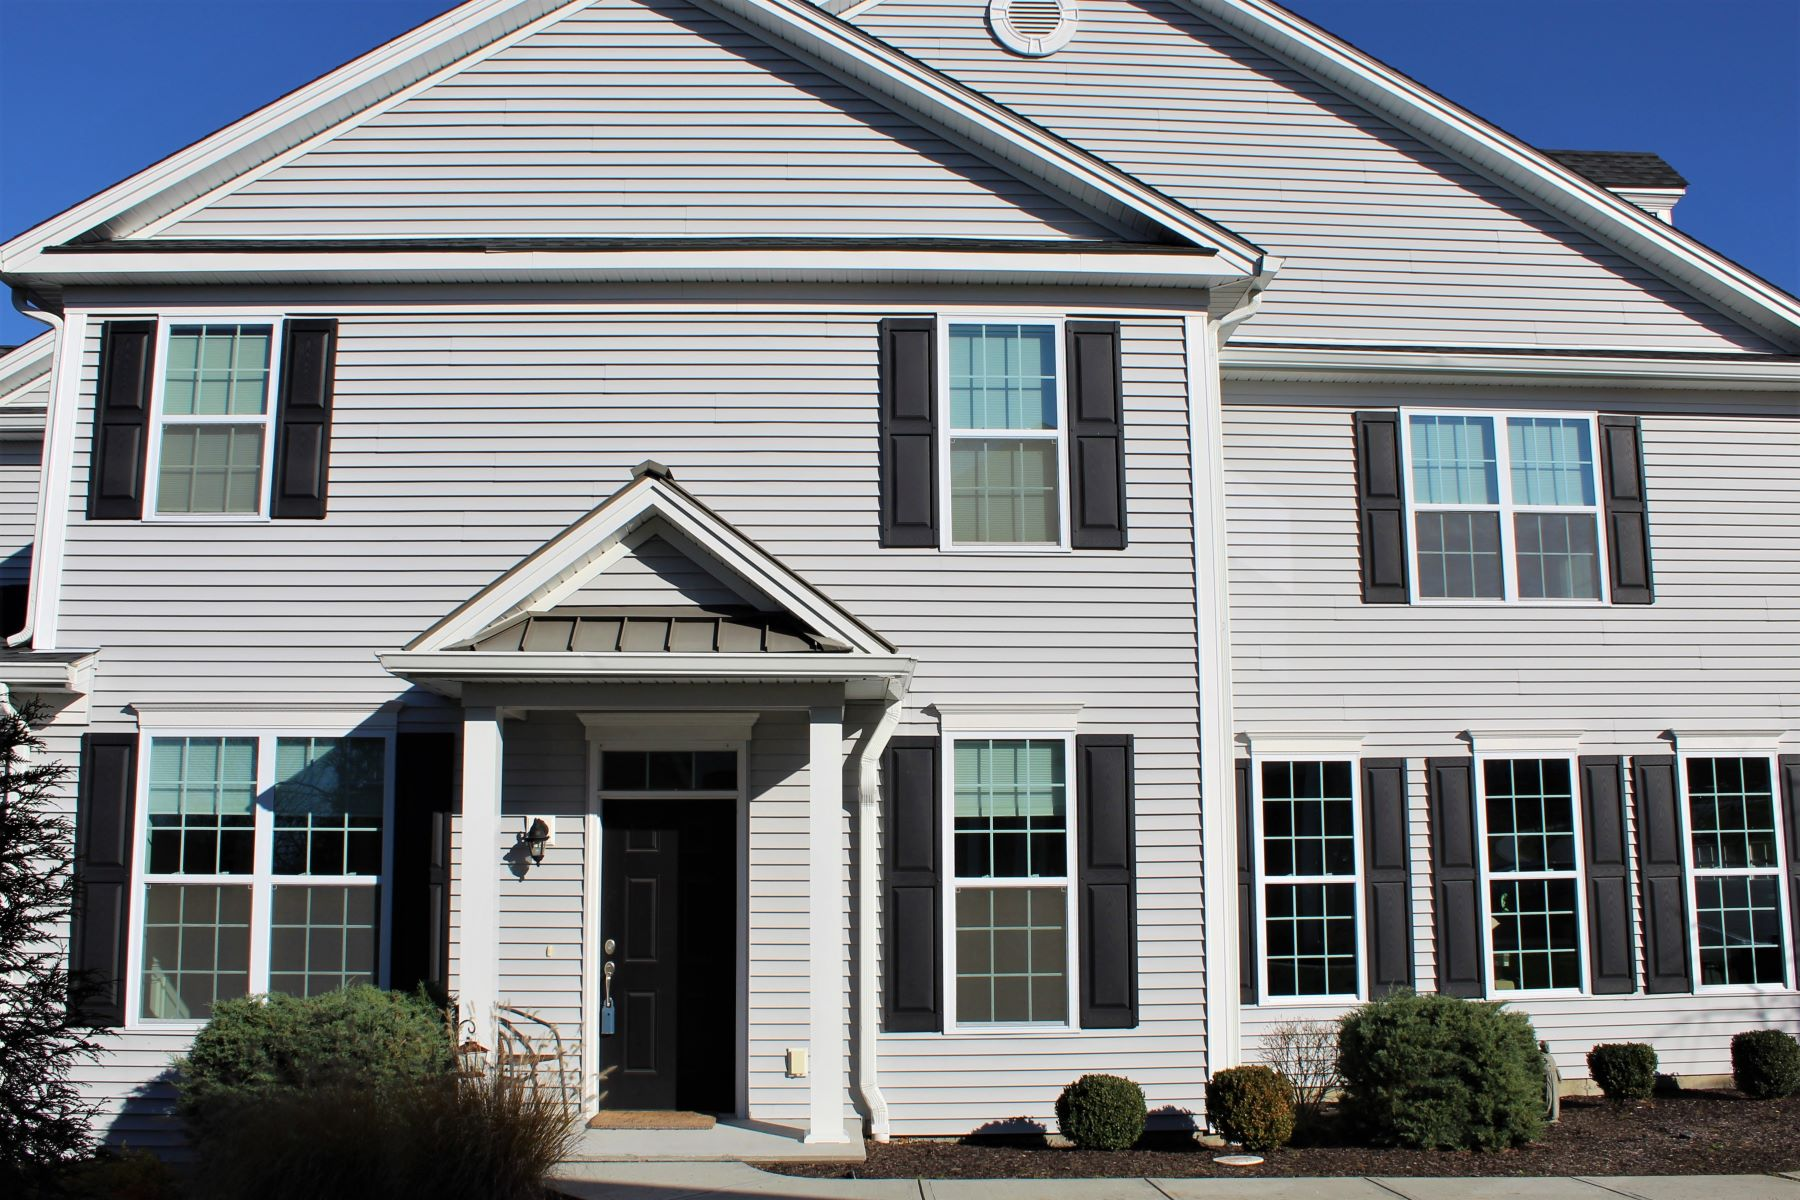 townhouses for Sale at End Unit Townhouse 9 Wilderswood Way, 9, Danbury, Connecticut 06810 United States